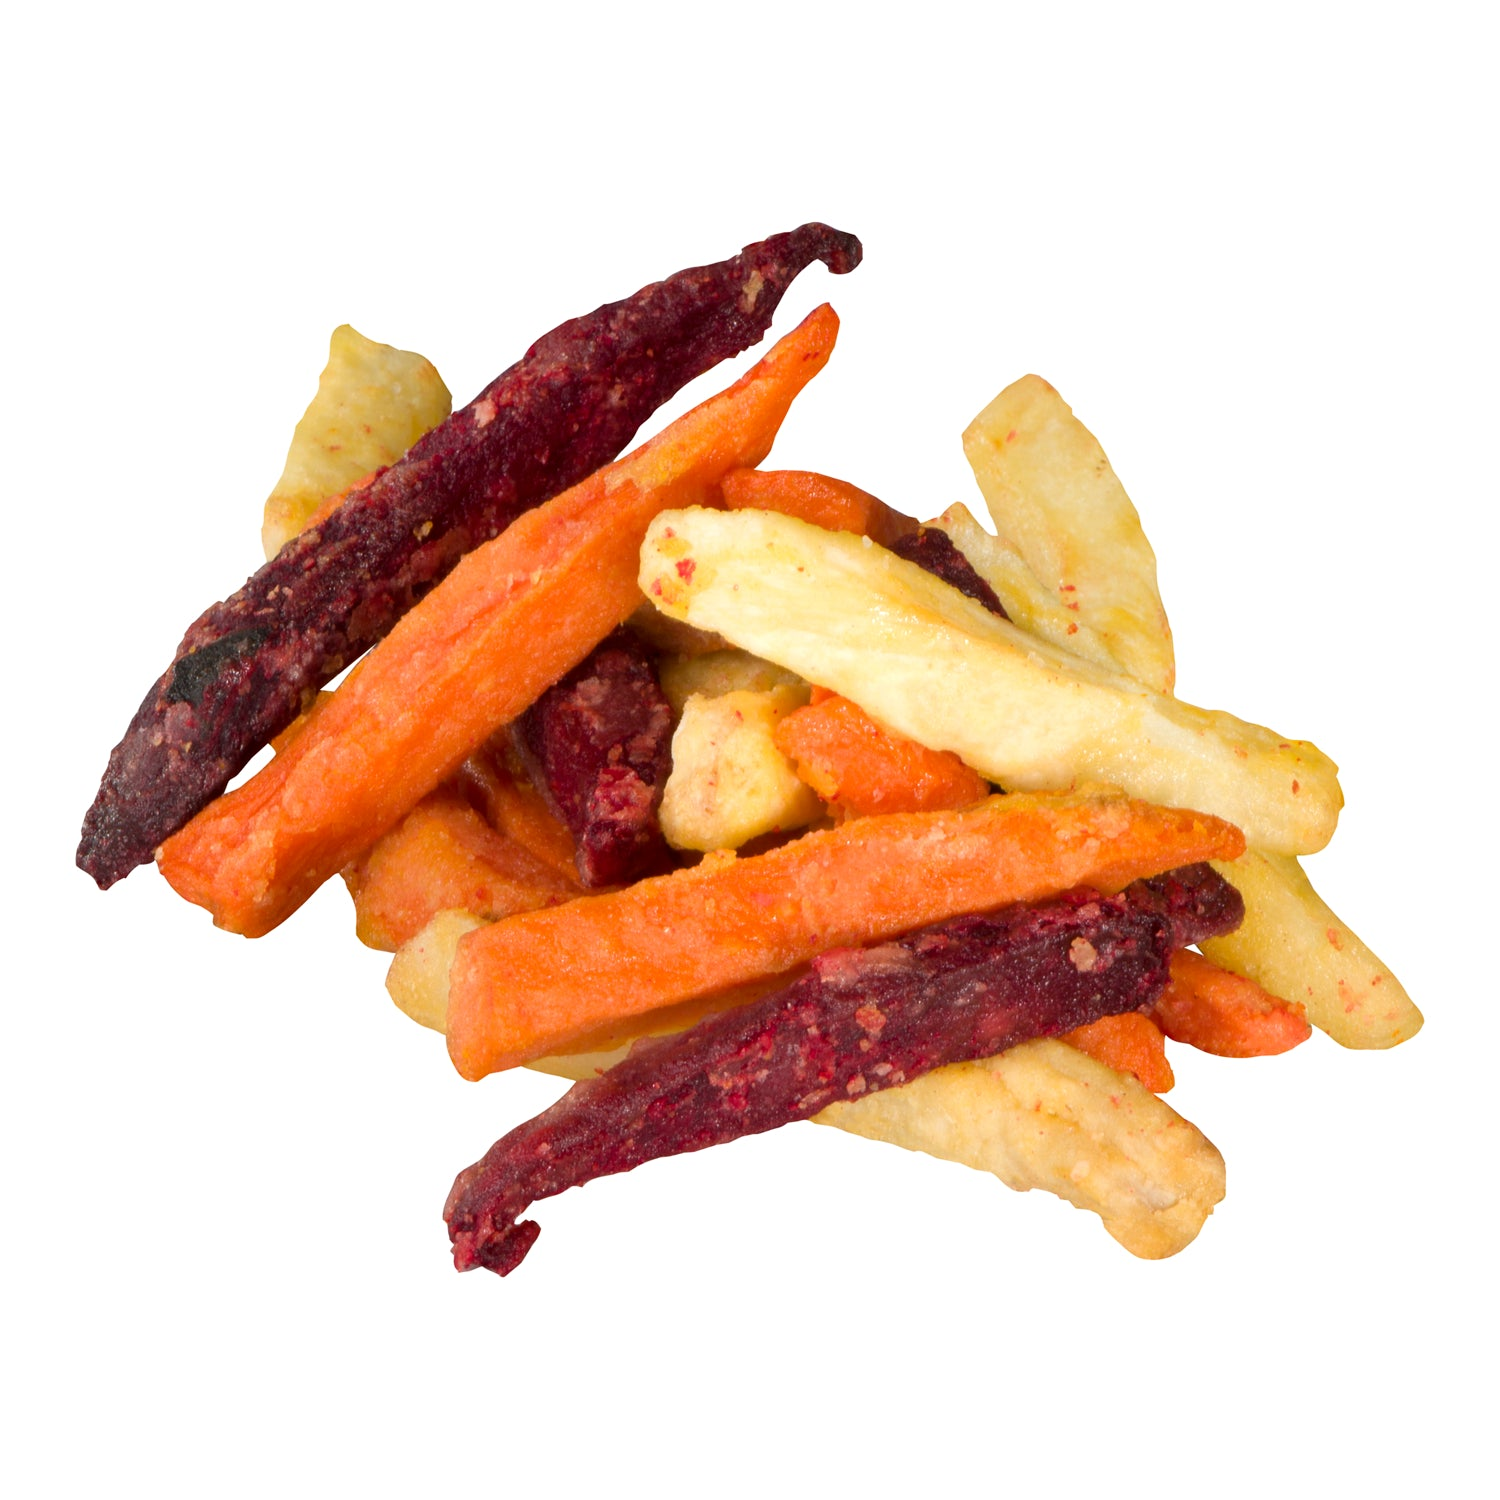 Valley Farms Frozen Straight Cut Root Vegetable Fries 5 lb - 3 Pack [$4.67/lb]